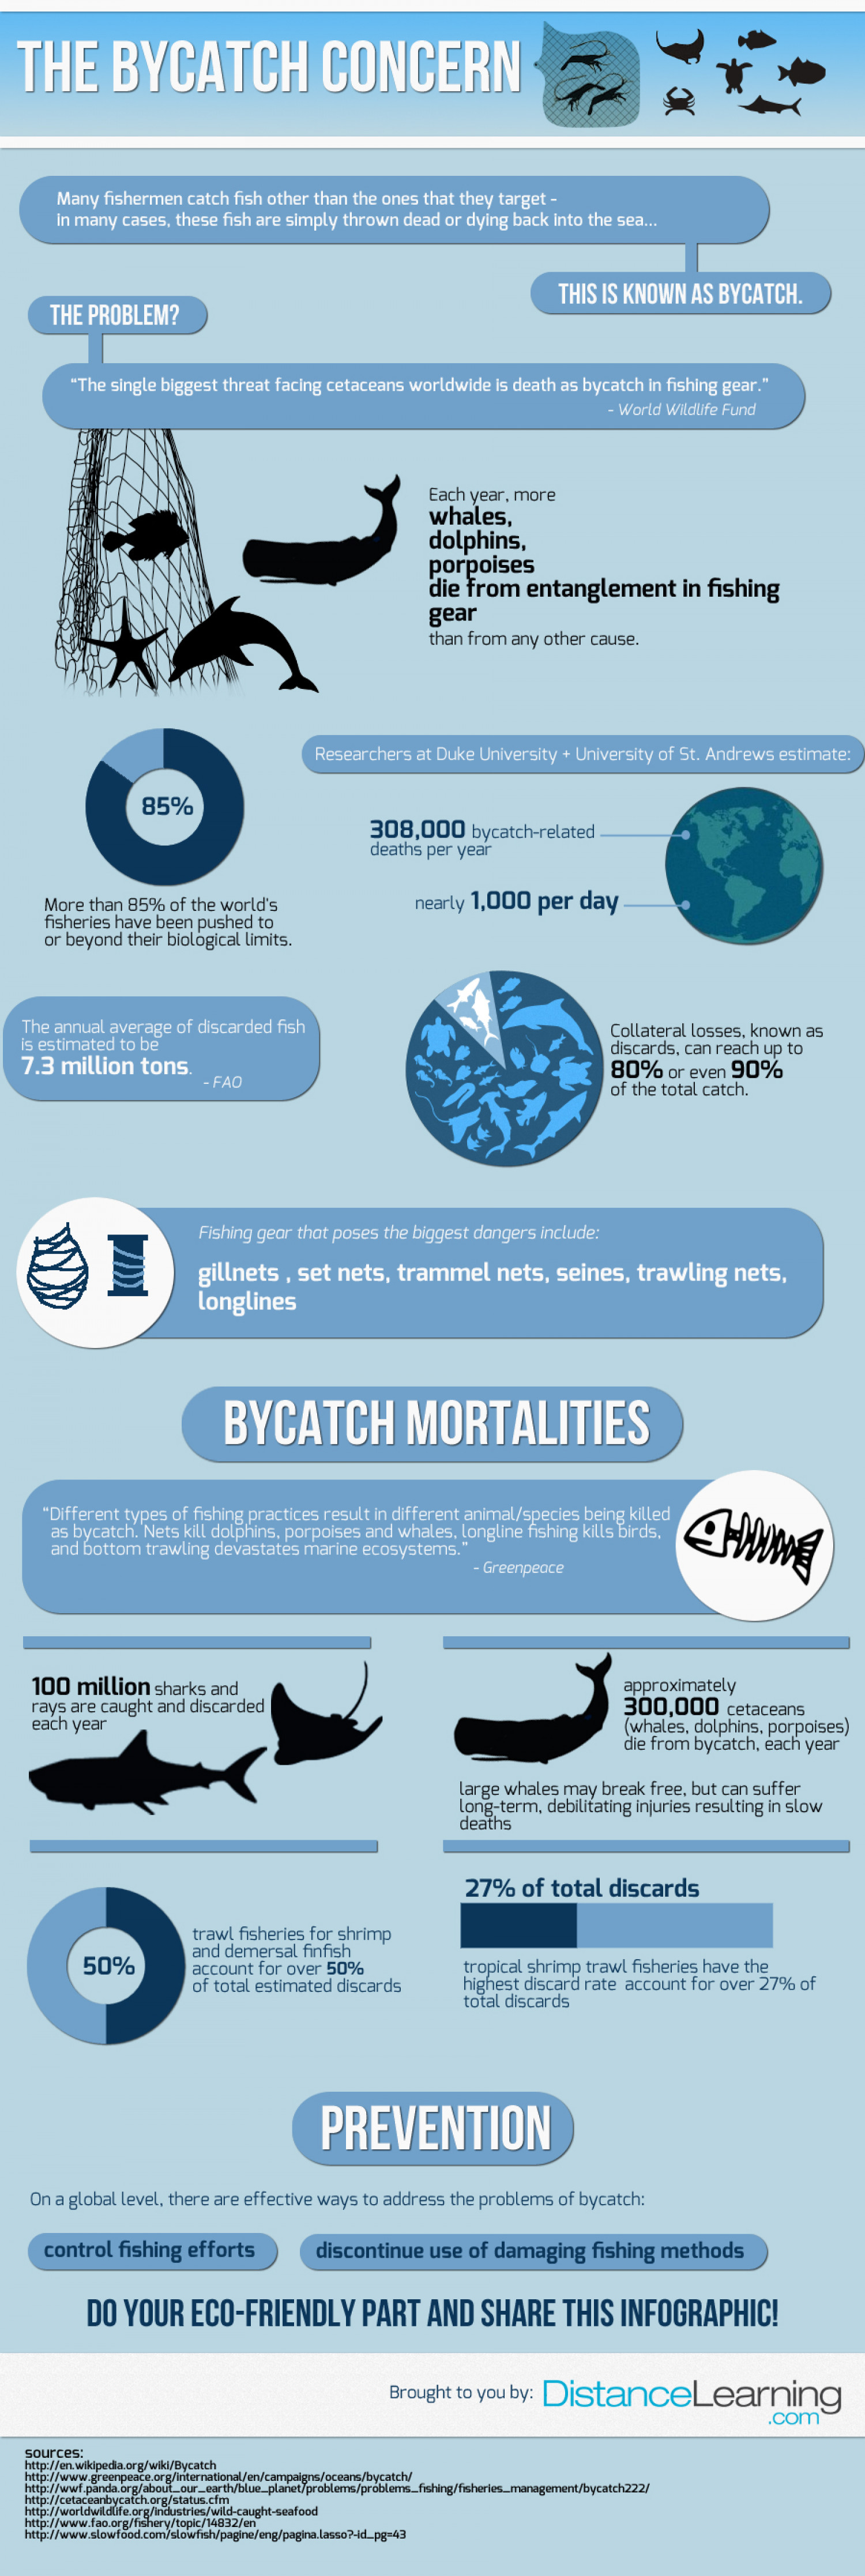 The Bycatch Concern Infographic